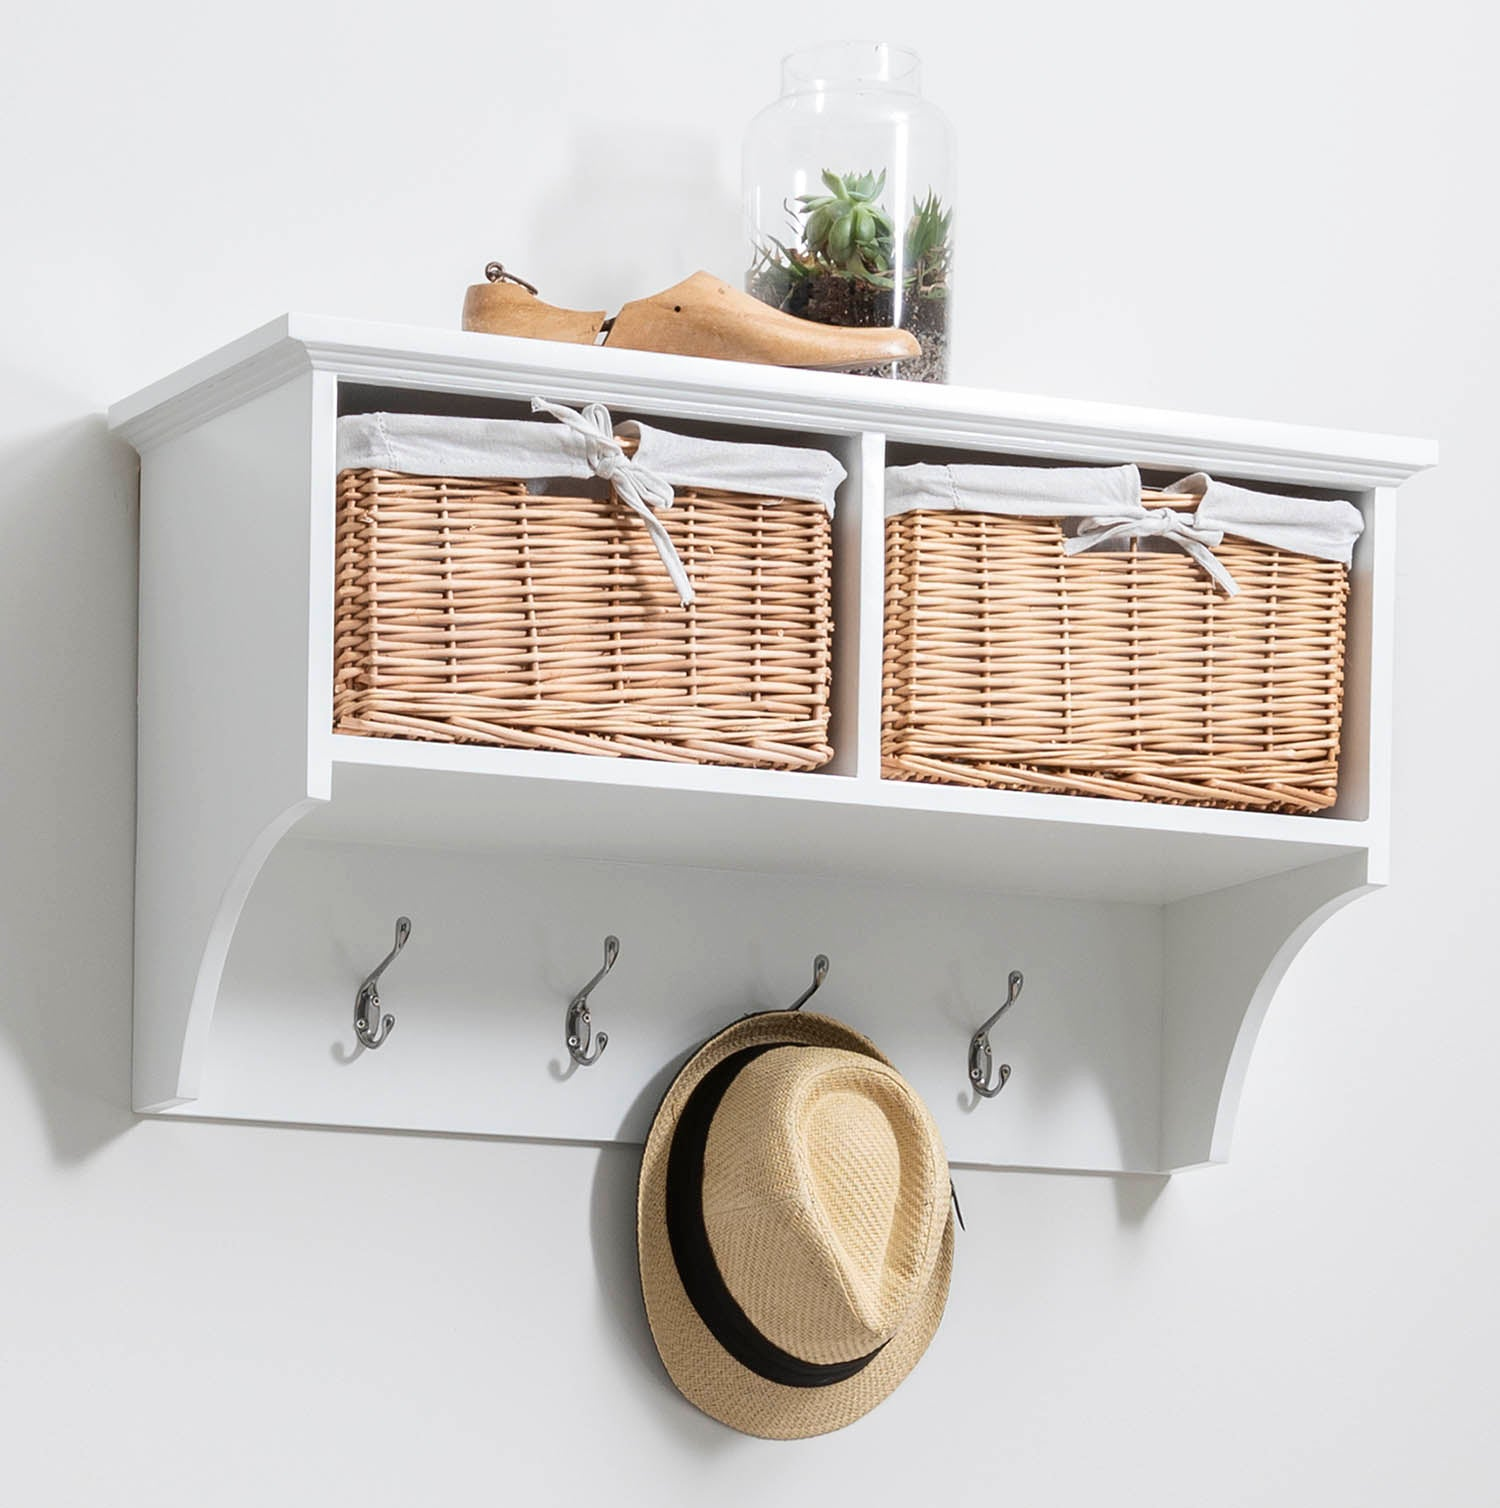 Fyfield Coat Rack with Shelf & Storage Baskets - White